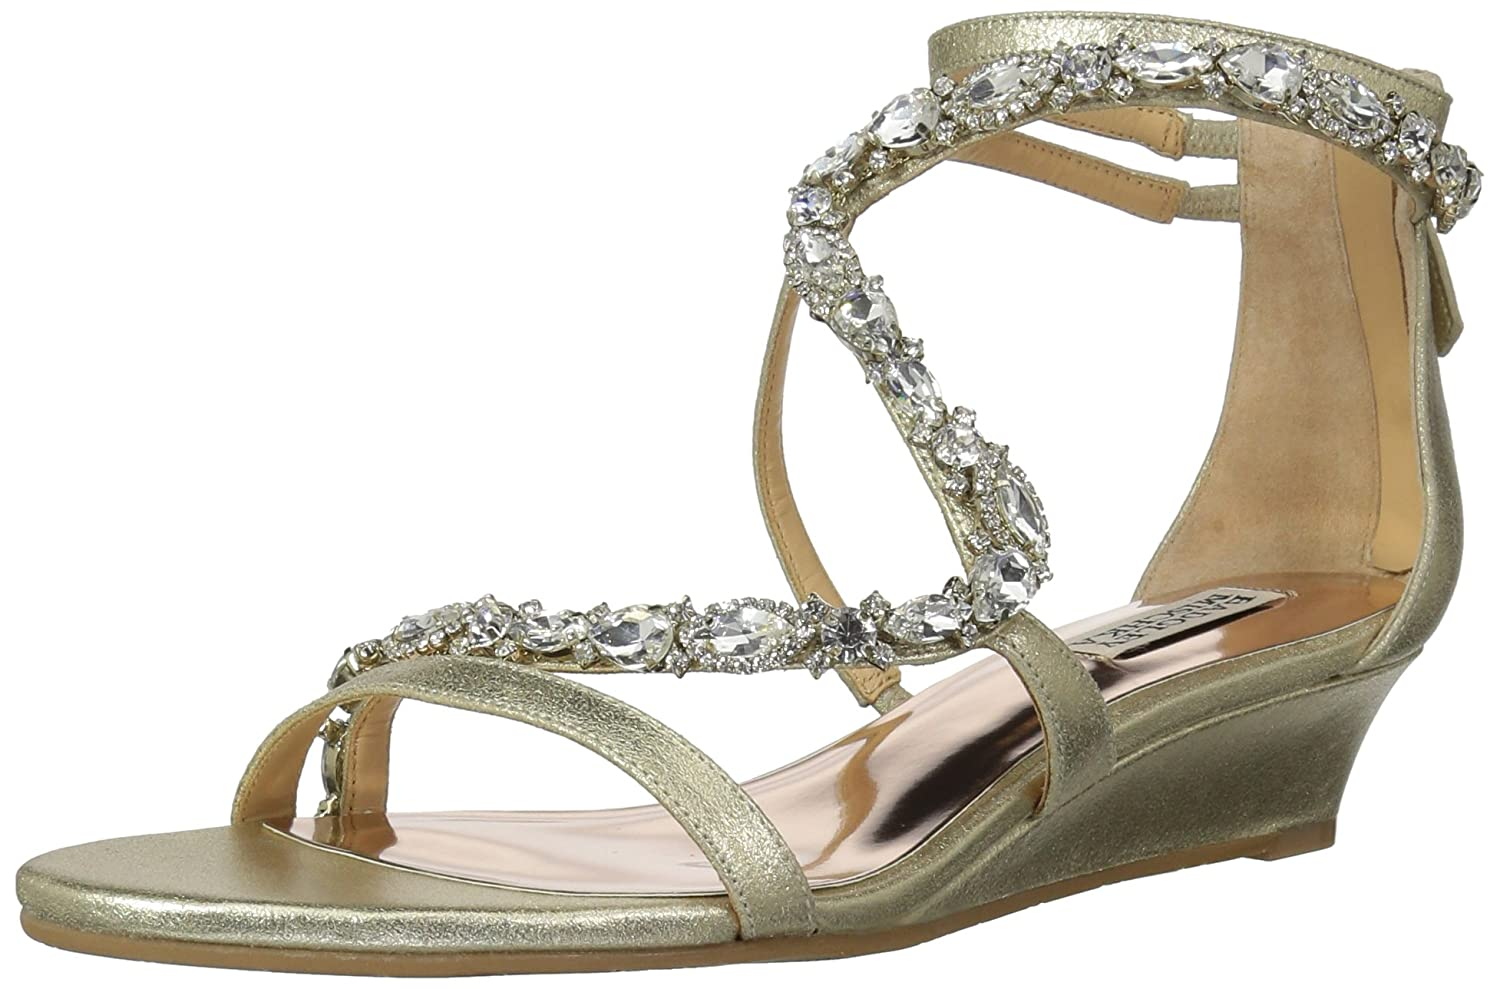 Badgley Mischka Women's Sierra Wedge Sandal MP4150